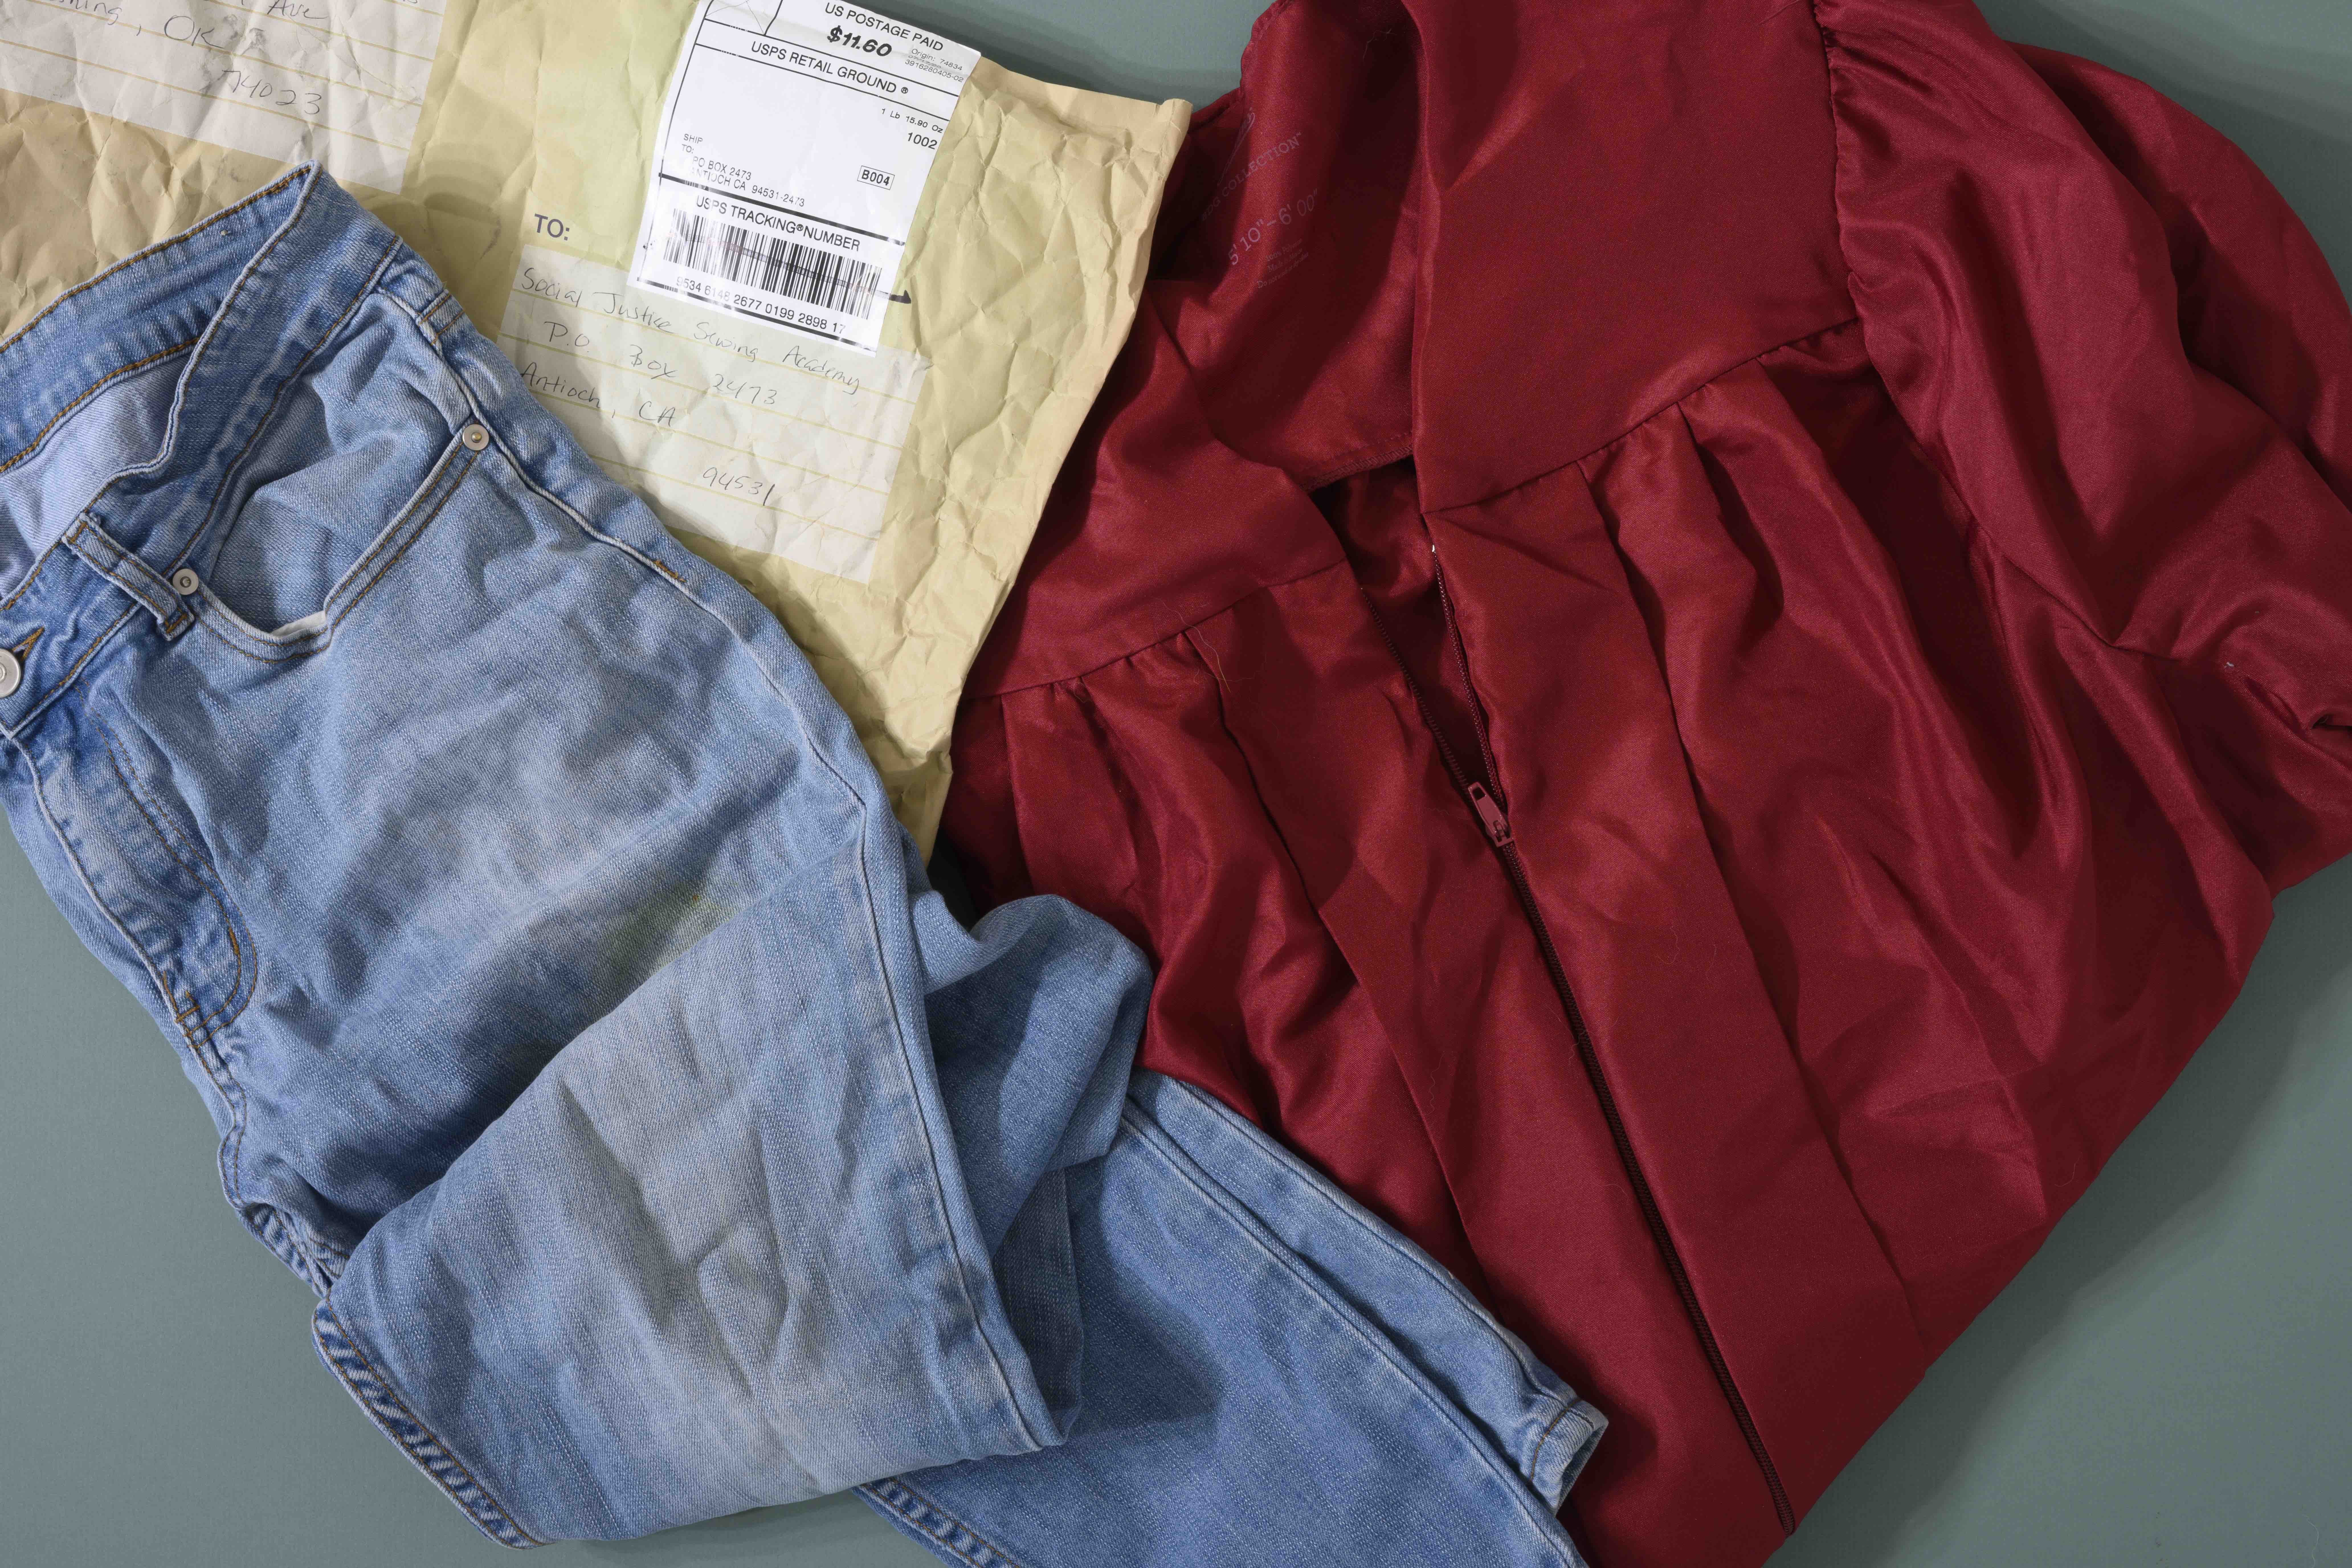 An old mailer, graduation robe, and pair of jeans